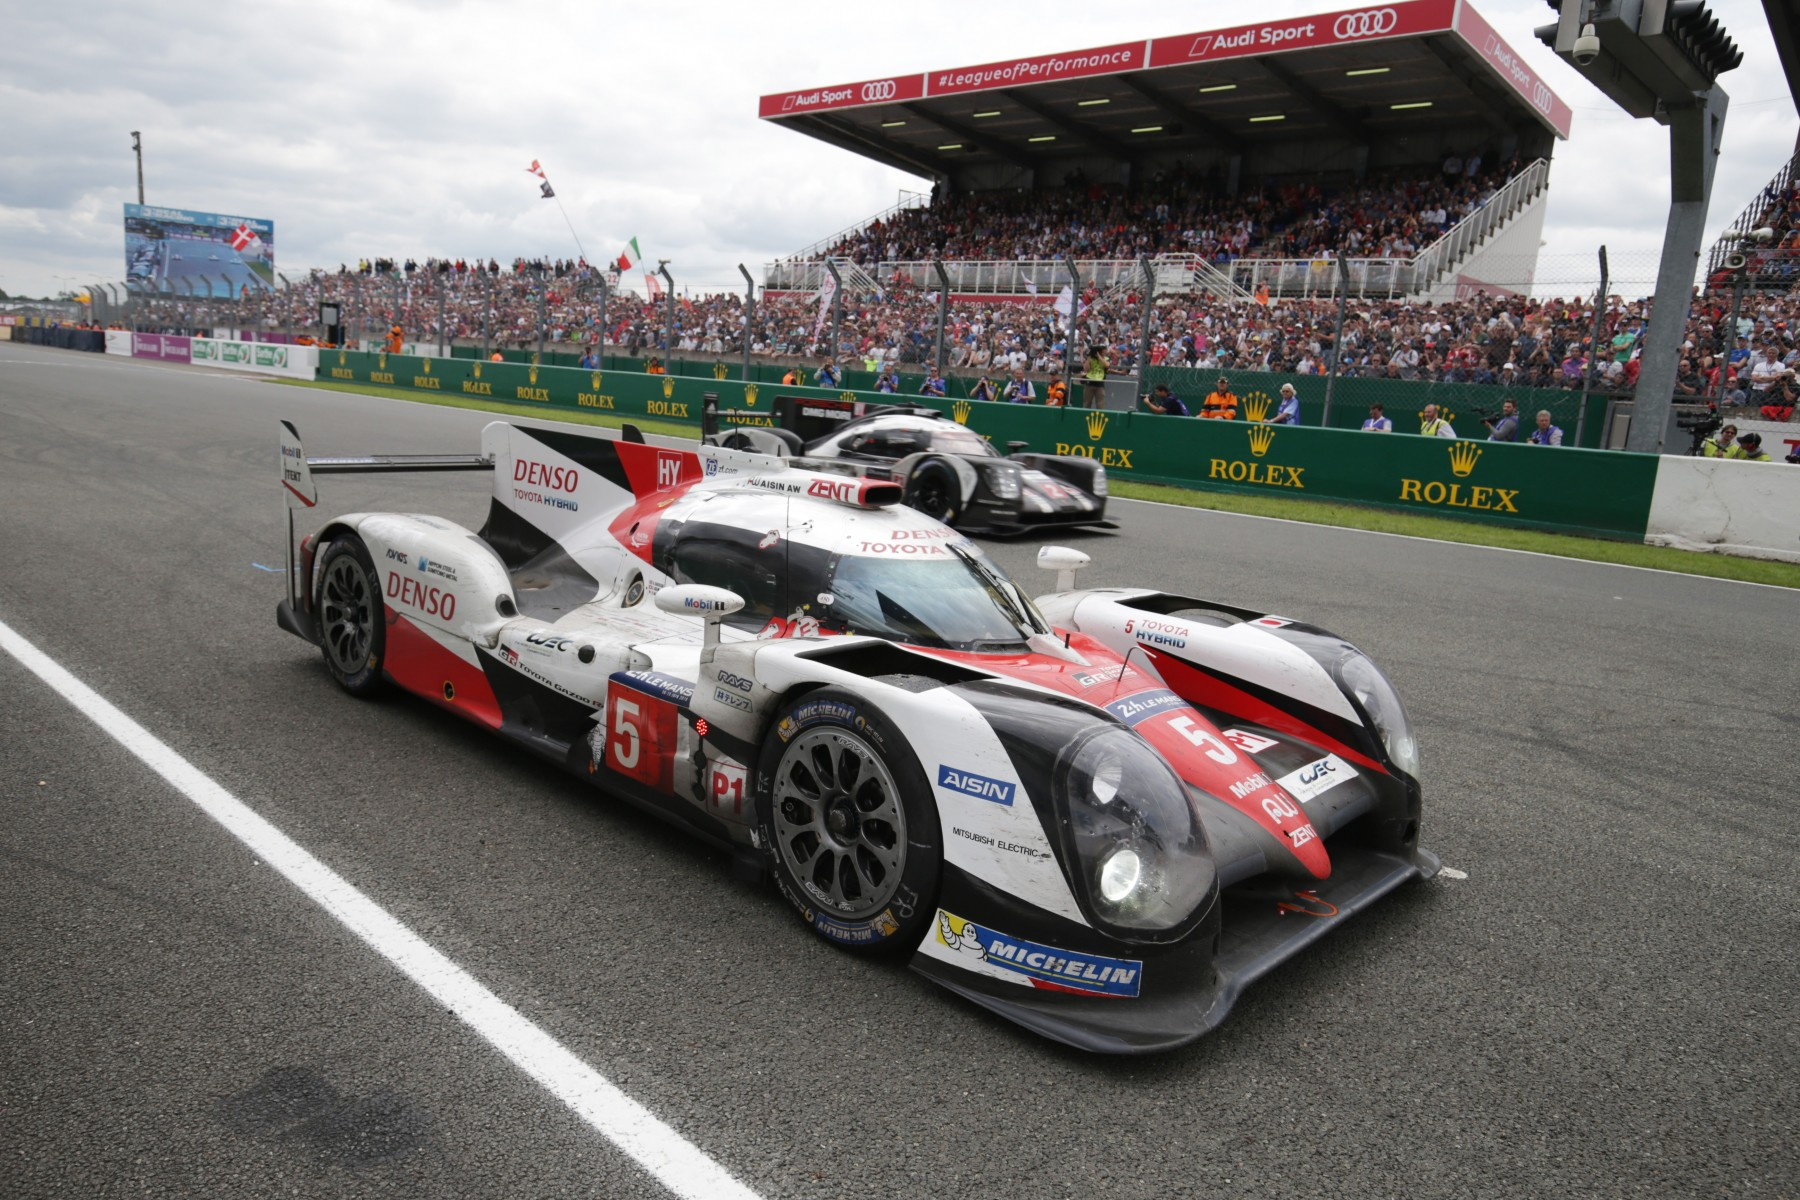 HEARTBREAK FOR TOYOTA GAZOO RACING AT LE MANS